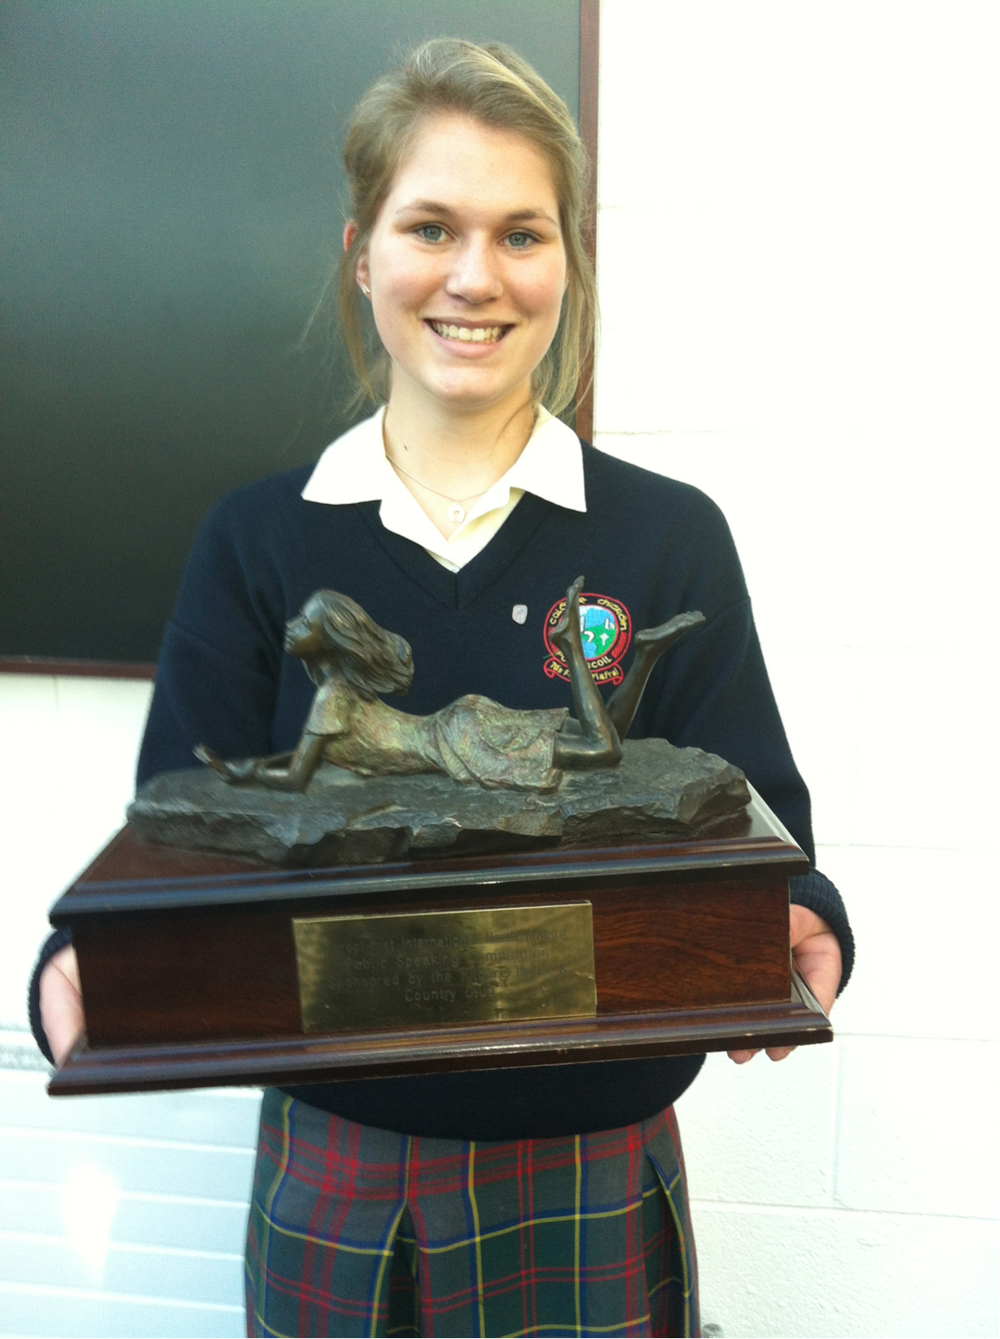 Eliana Jupe with the trophy she won at theSoroptimist International North Kildare Public Speaking Competition